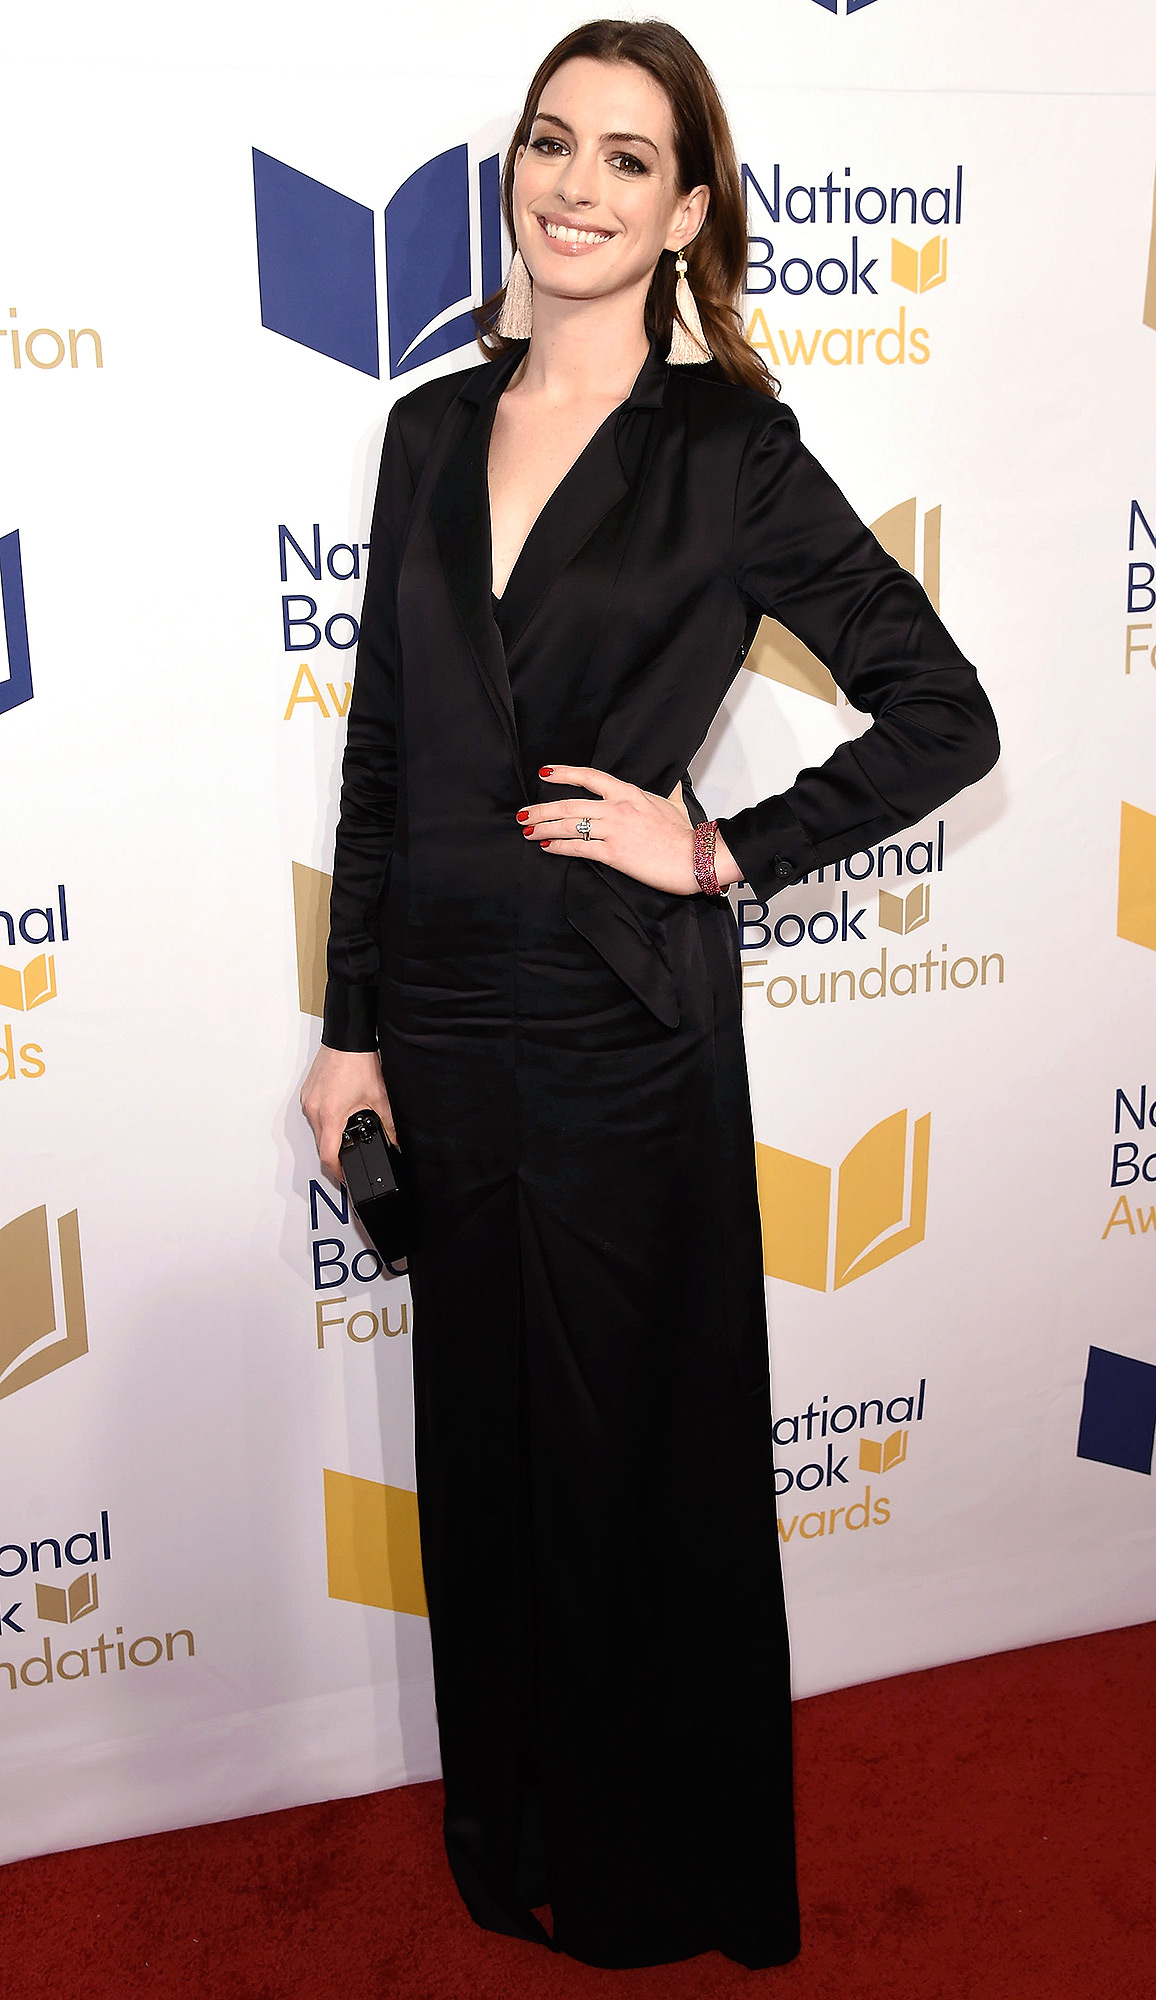 68th National Book Awards